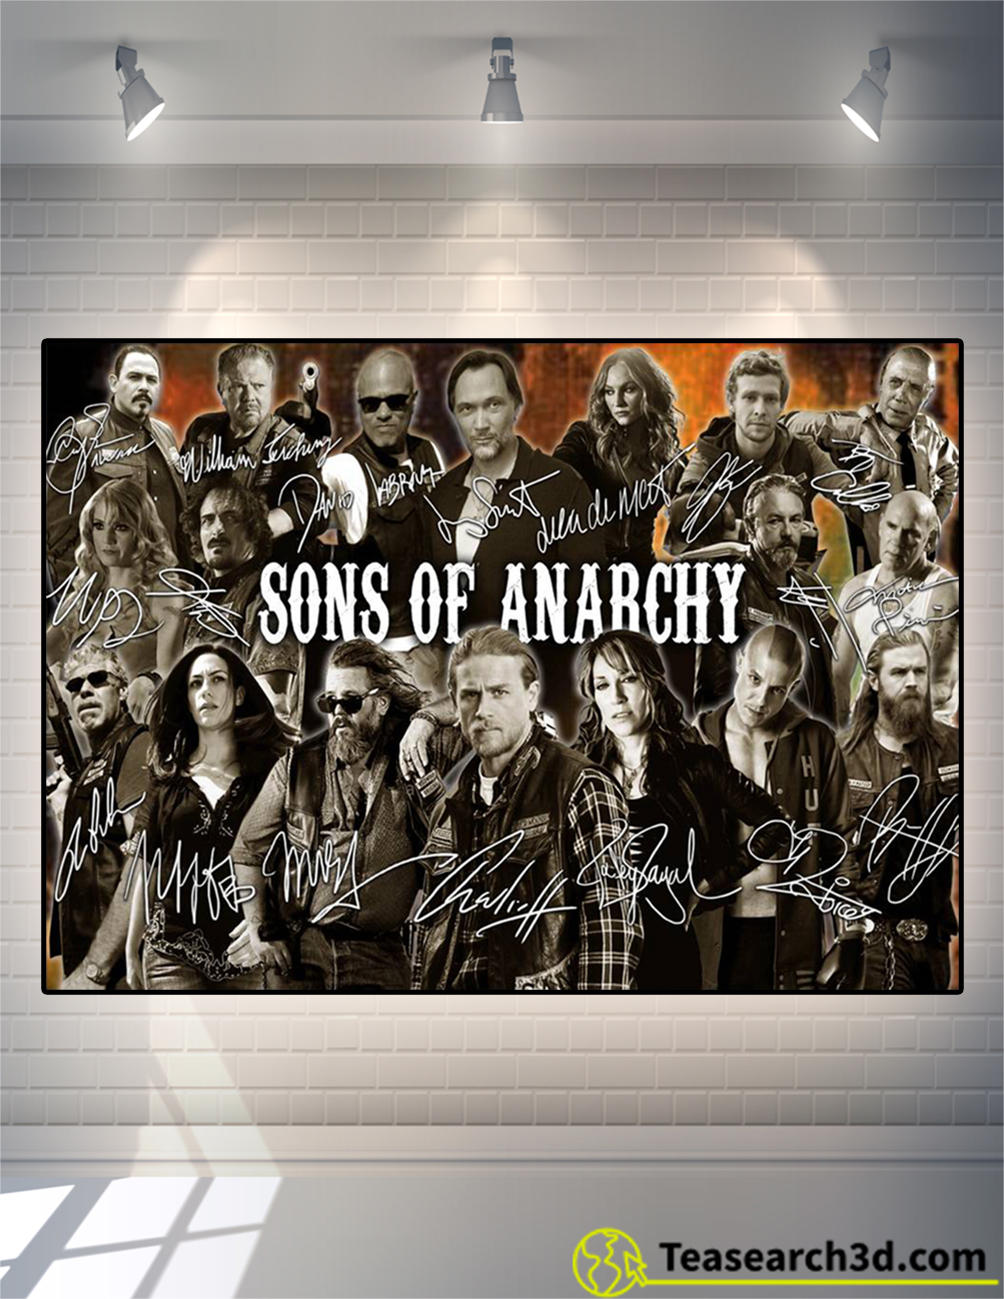 Sons of anarchy signature poster